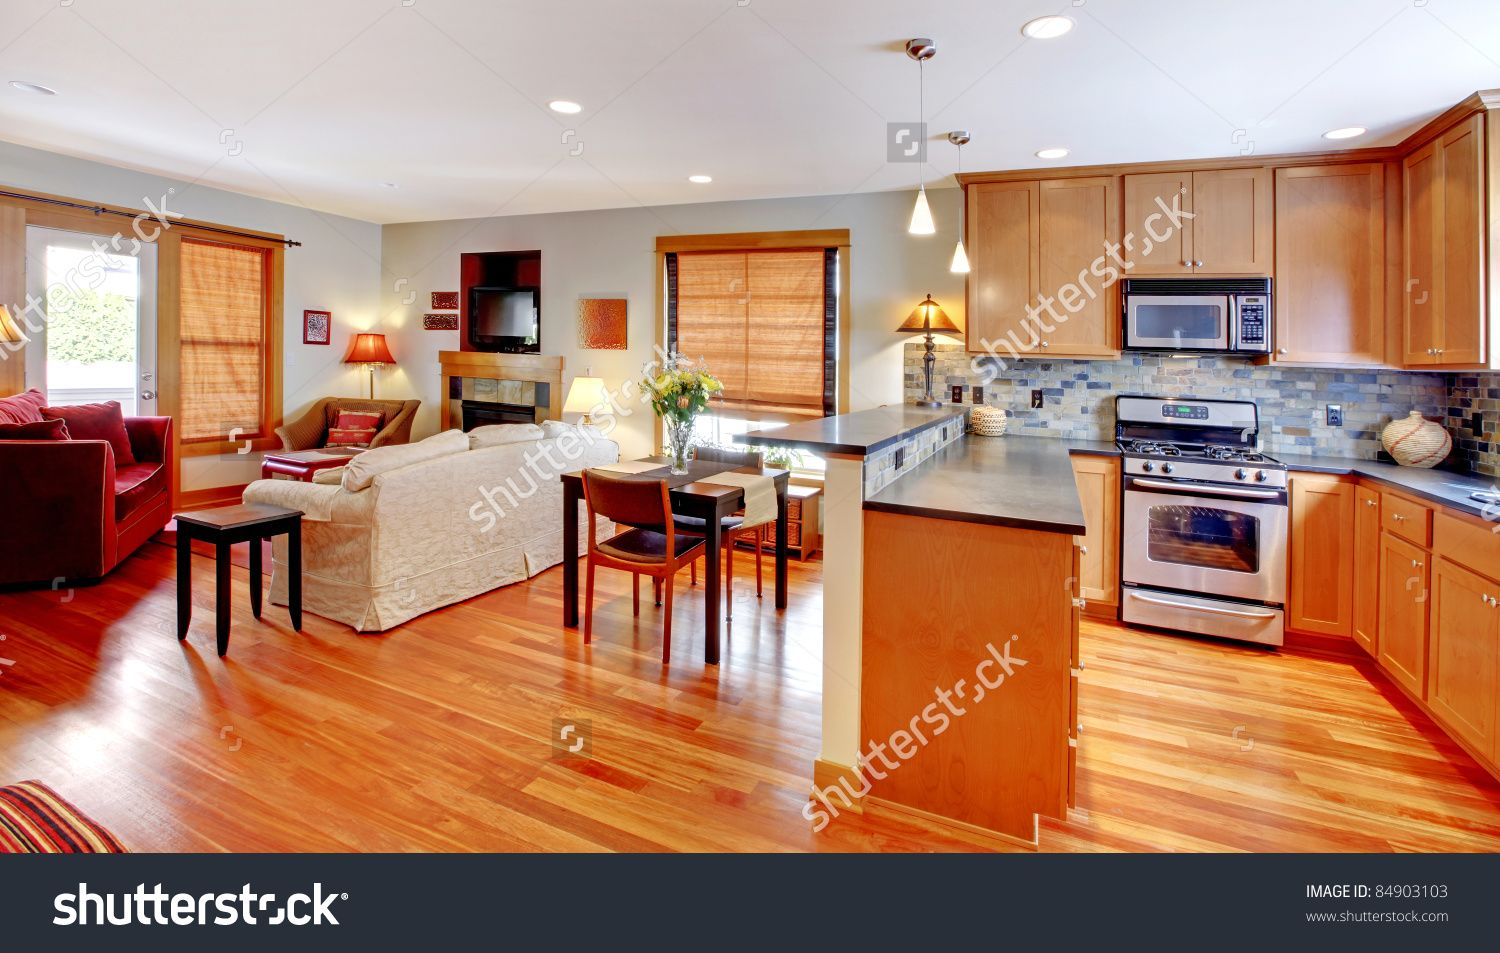 How To Divide An Open Plan Space 9 Ideas: Image Result For Open Floor Plan Home